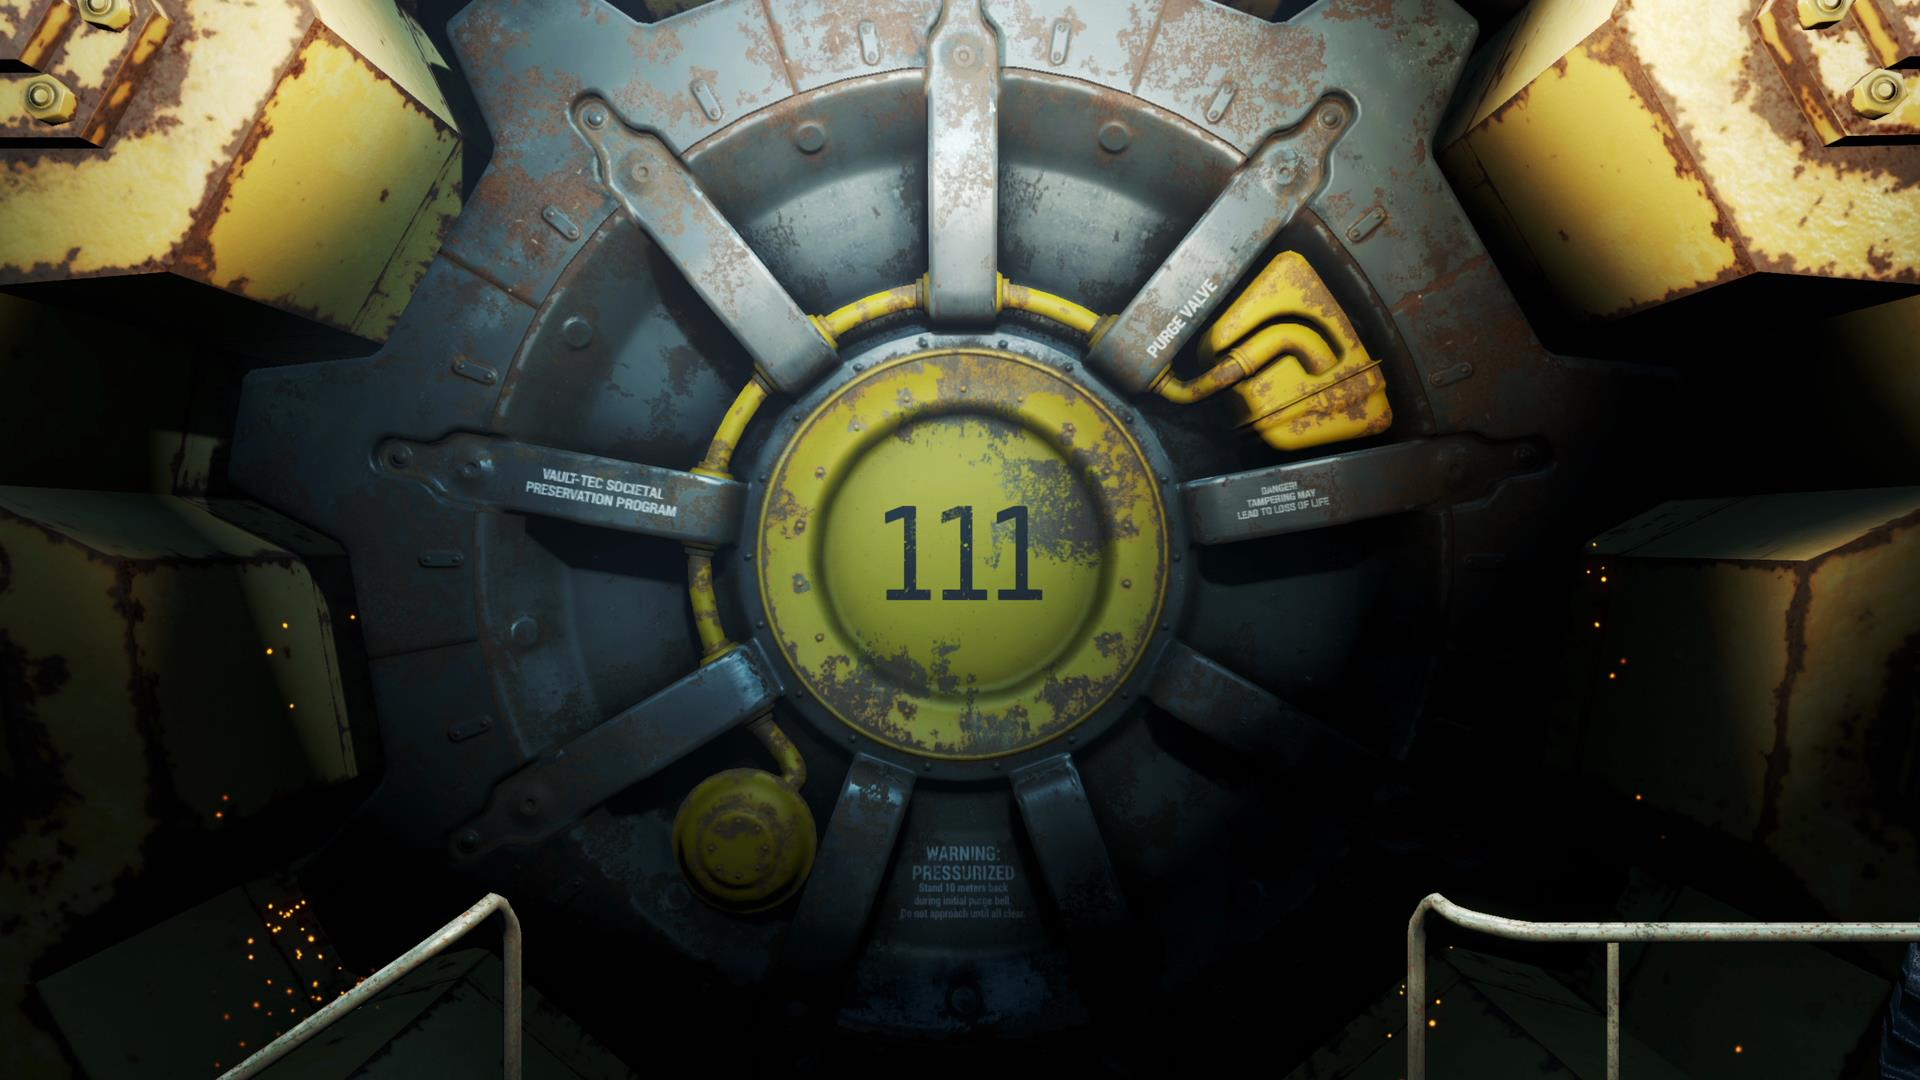 Fallout 4s story is officially in lock down Like inside a vault in 1920x1080